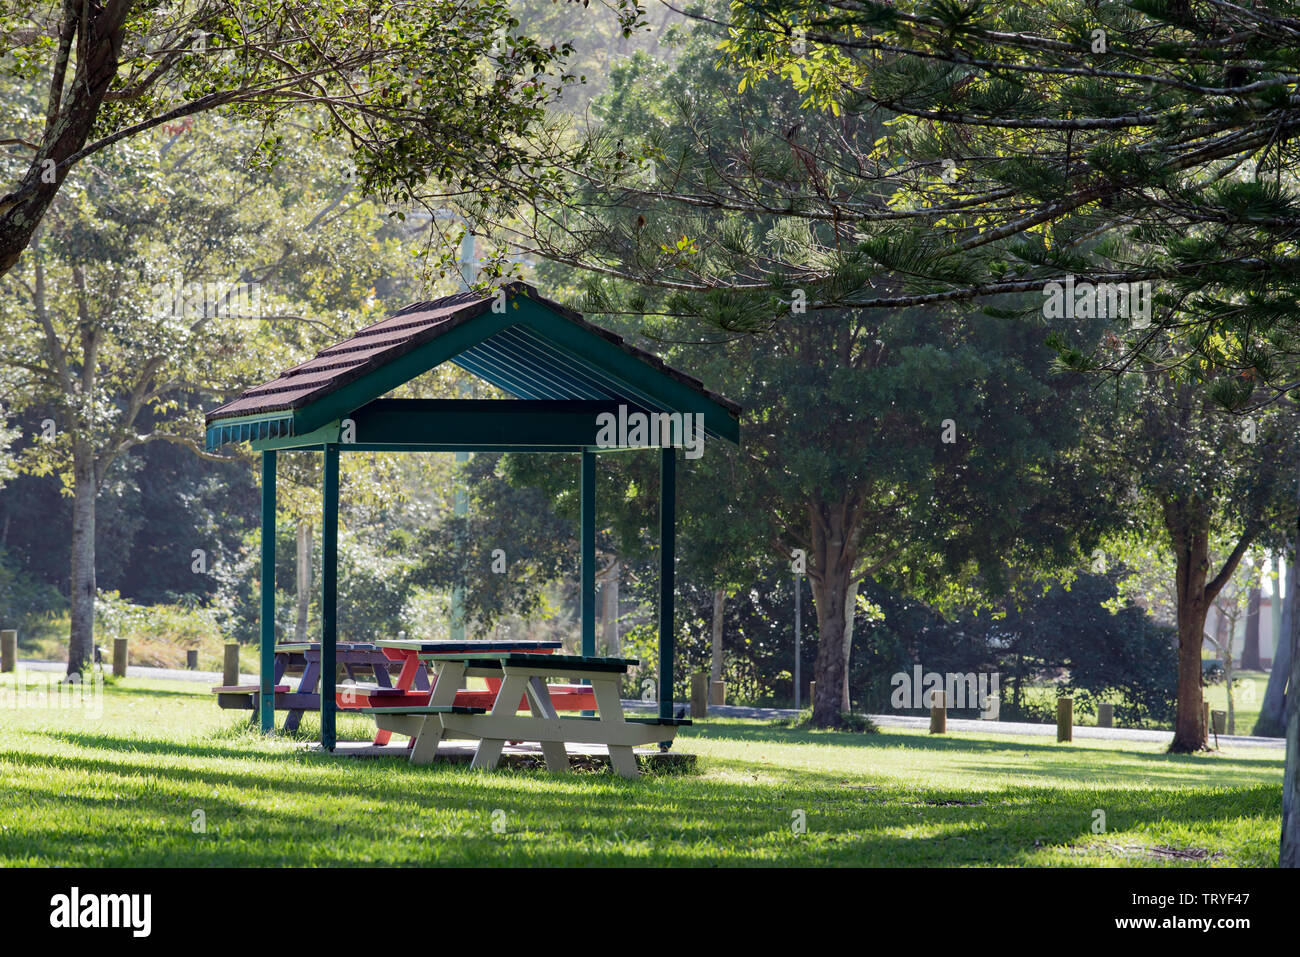 A terracotta tile roofed picnic eating area in a lush green park at Hallidays Point on the NSW mid north coast of Australia - Stock Image